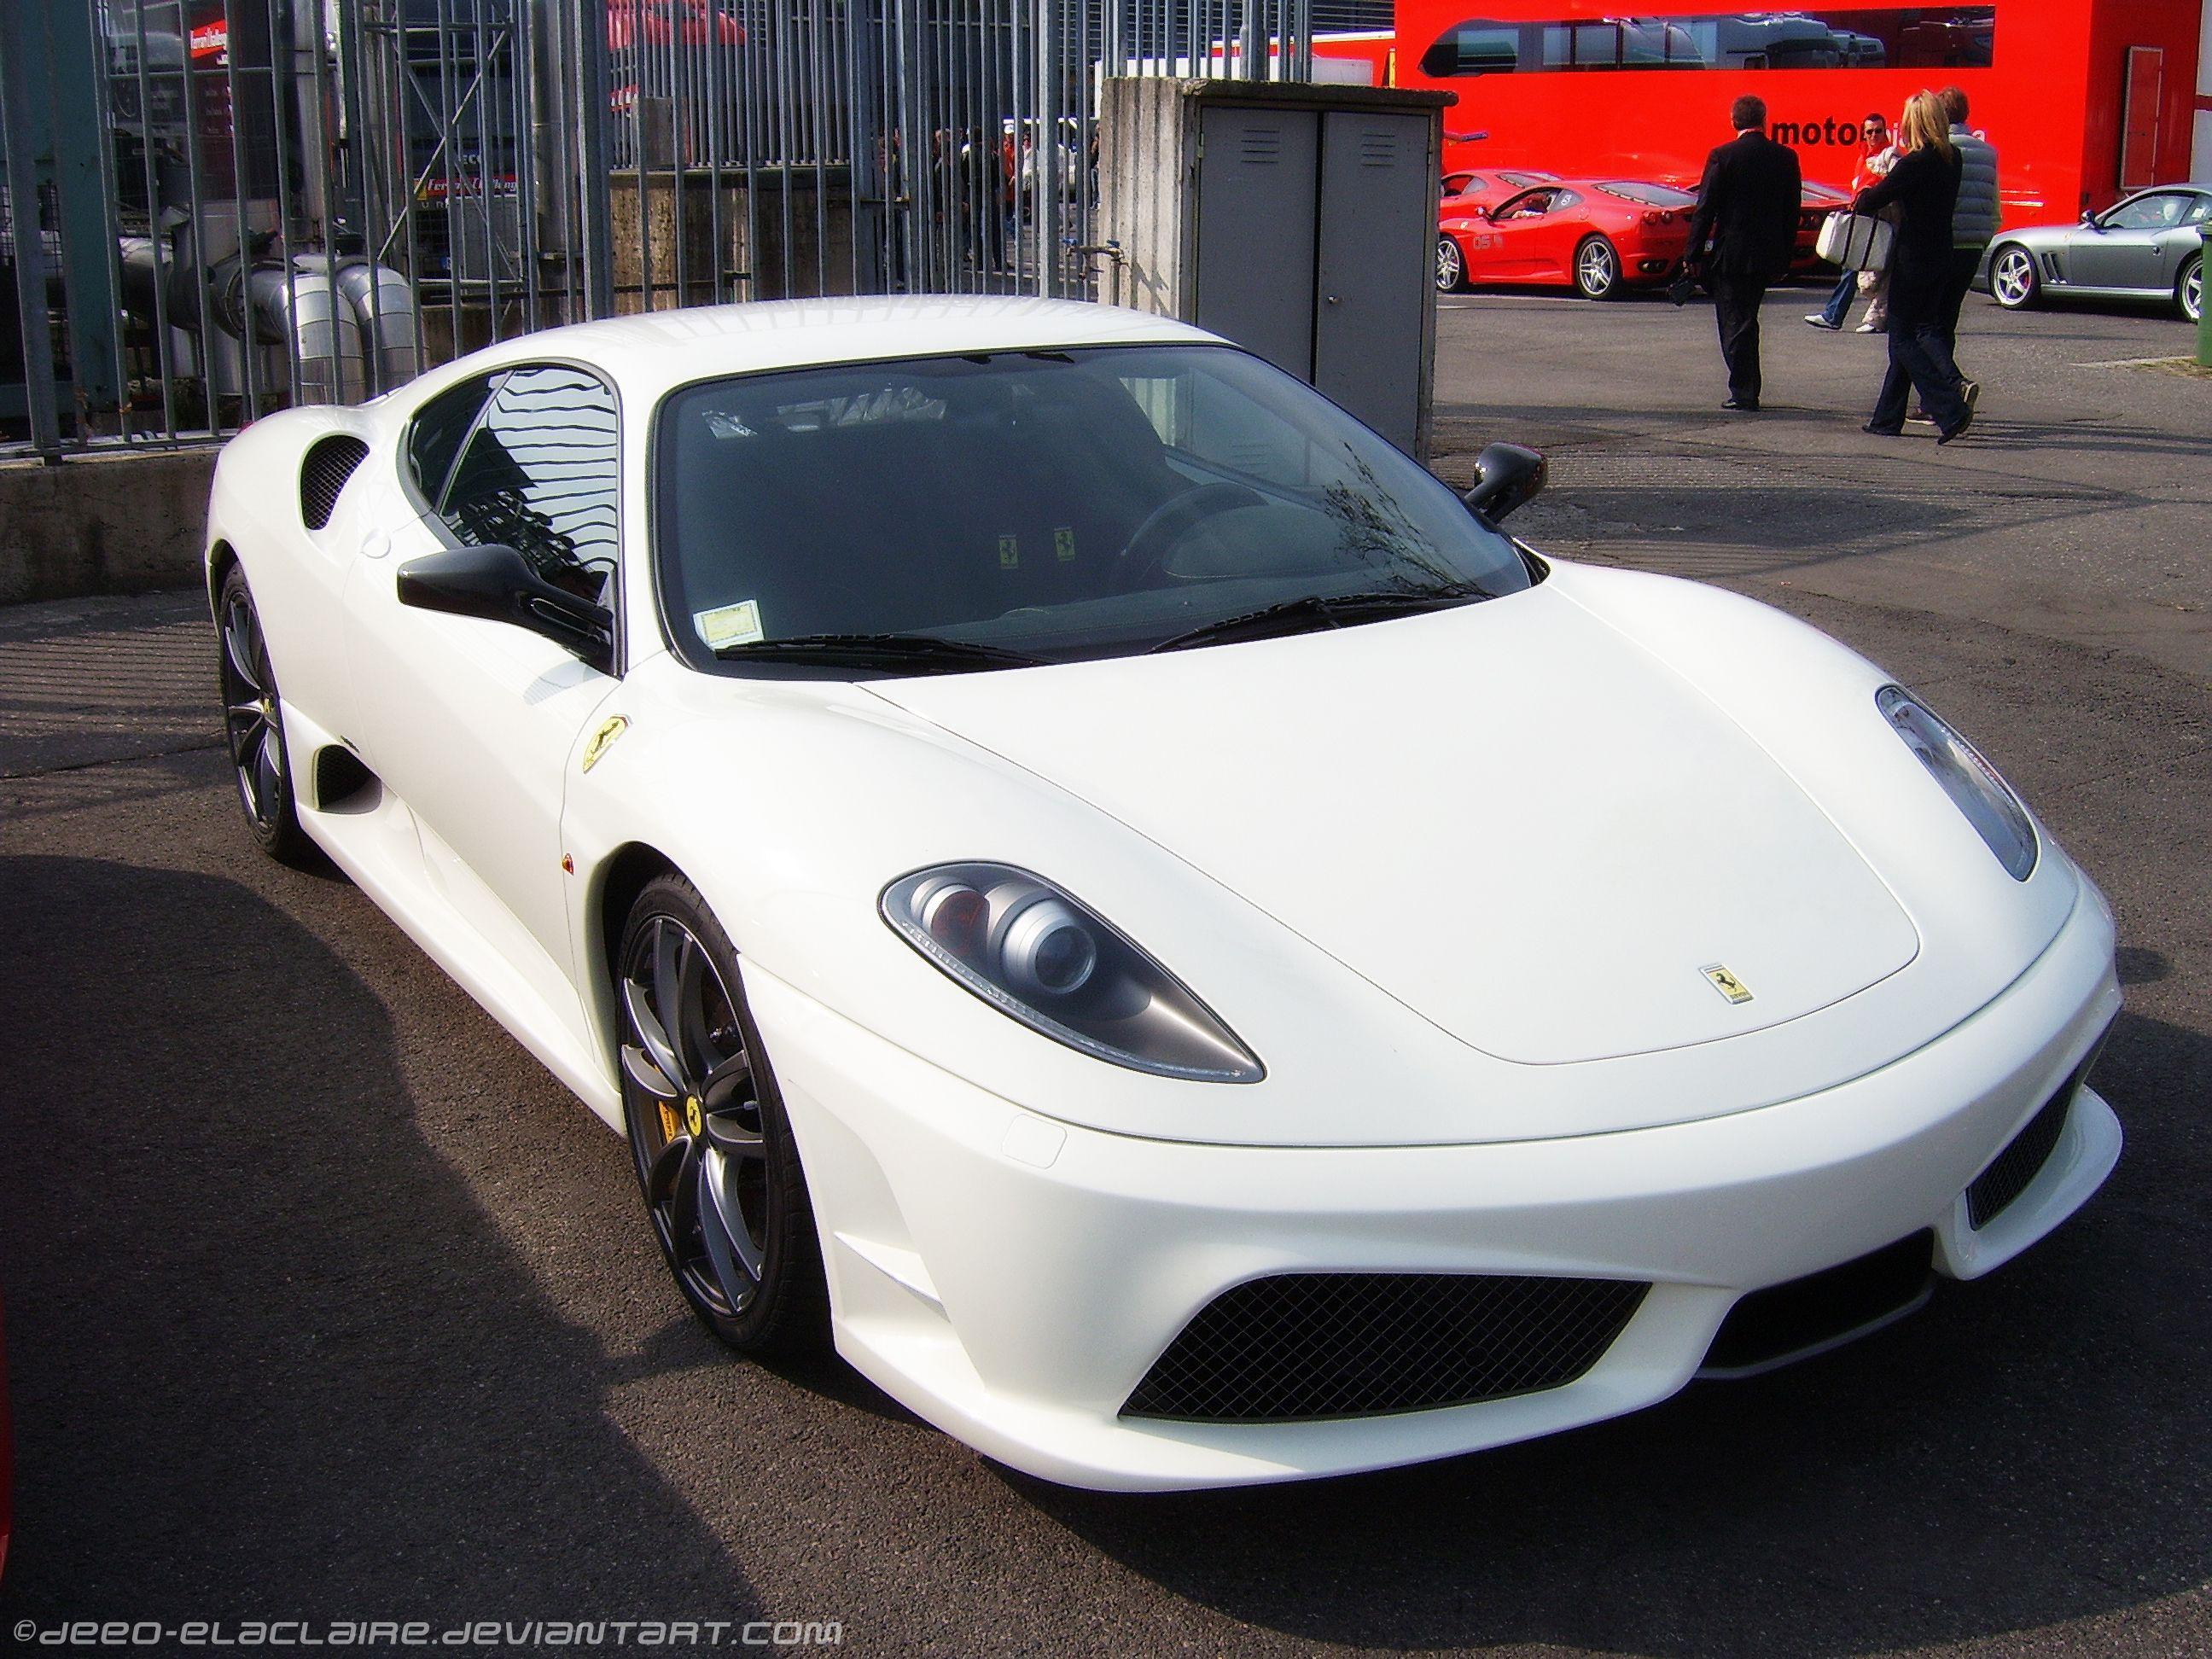 sale autogespot crop january for ferrari used spider